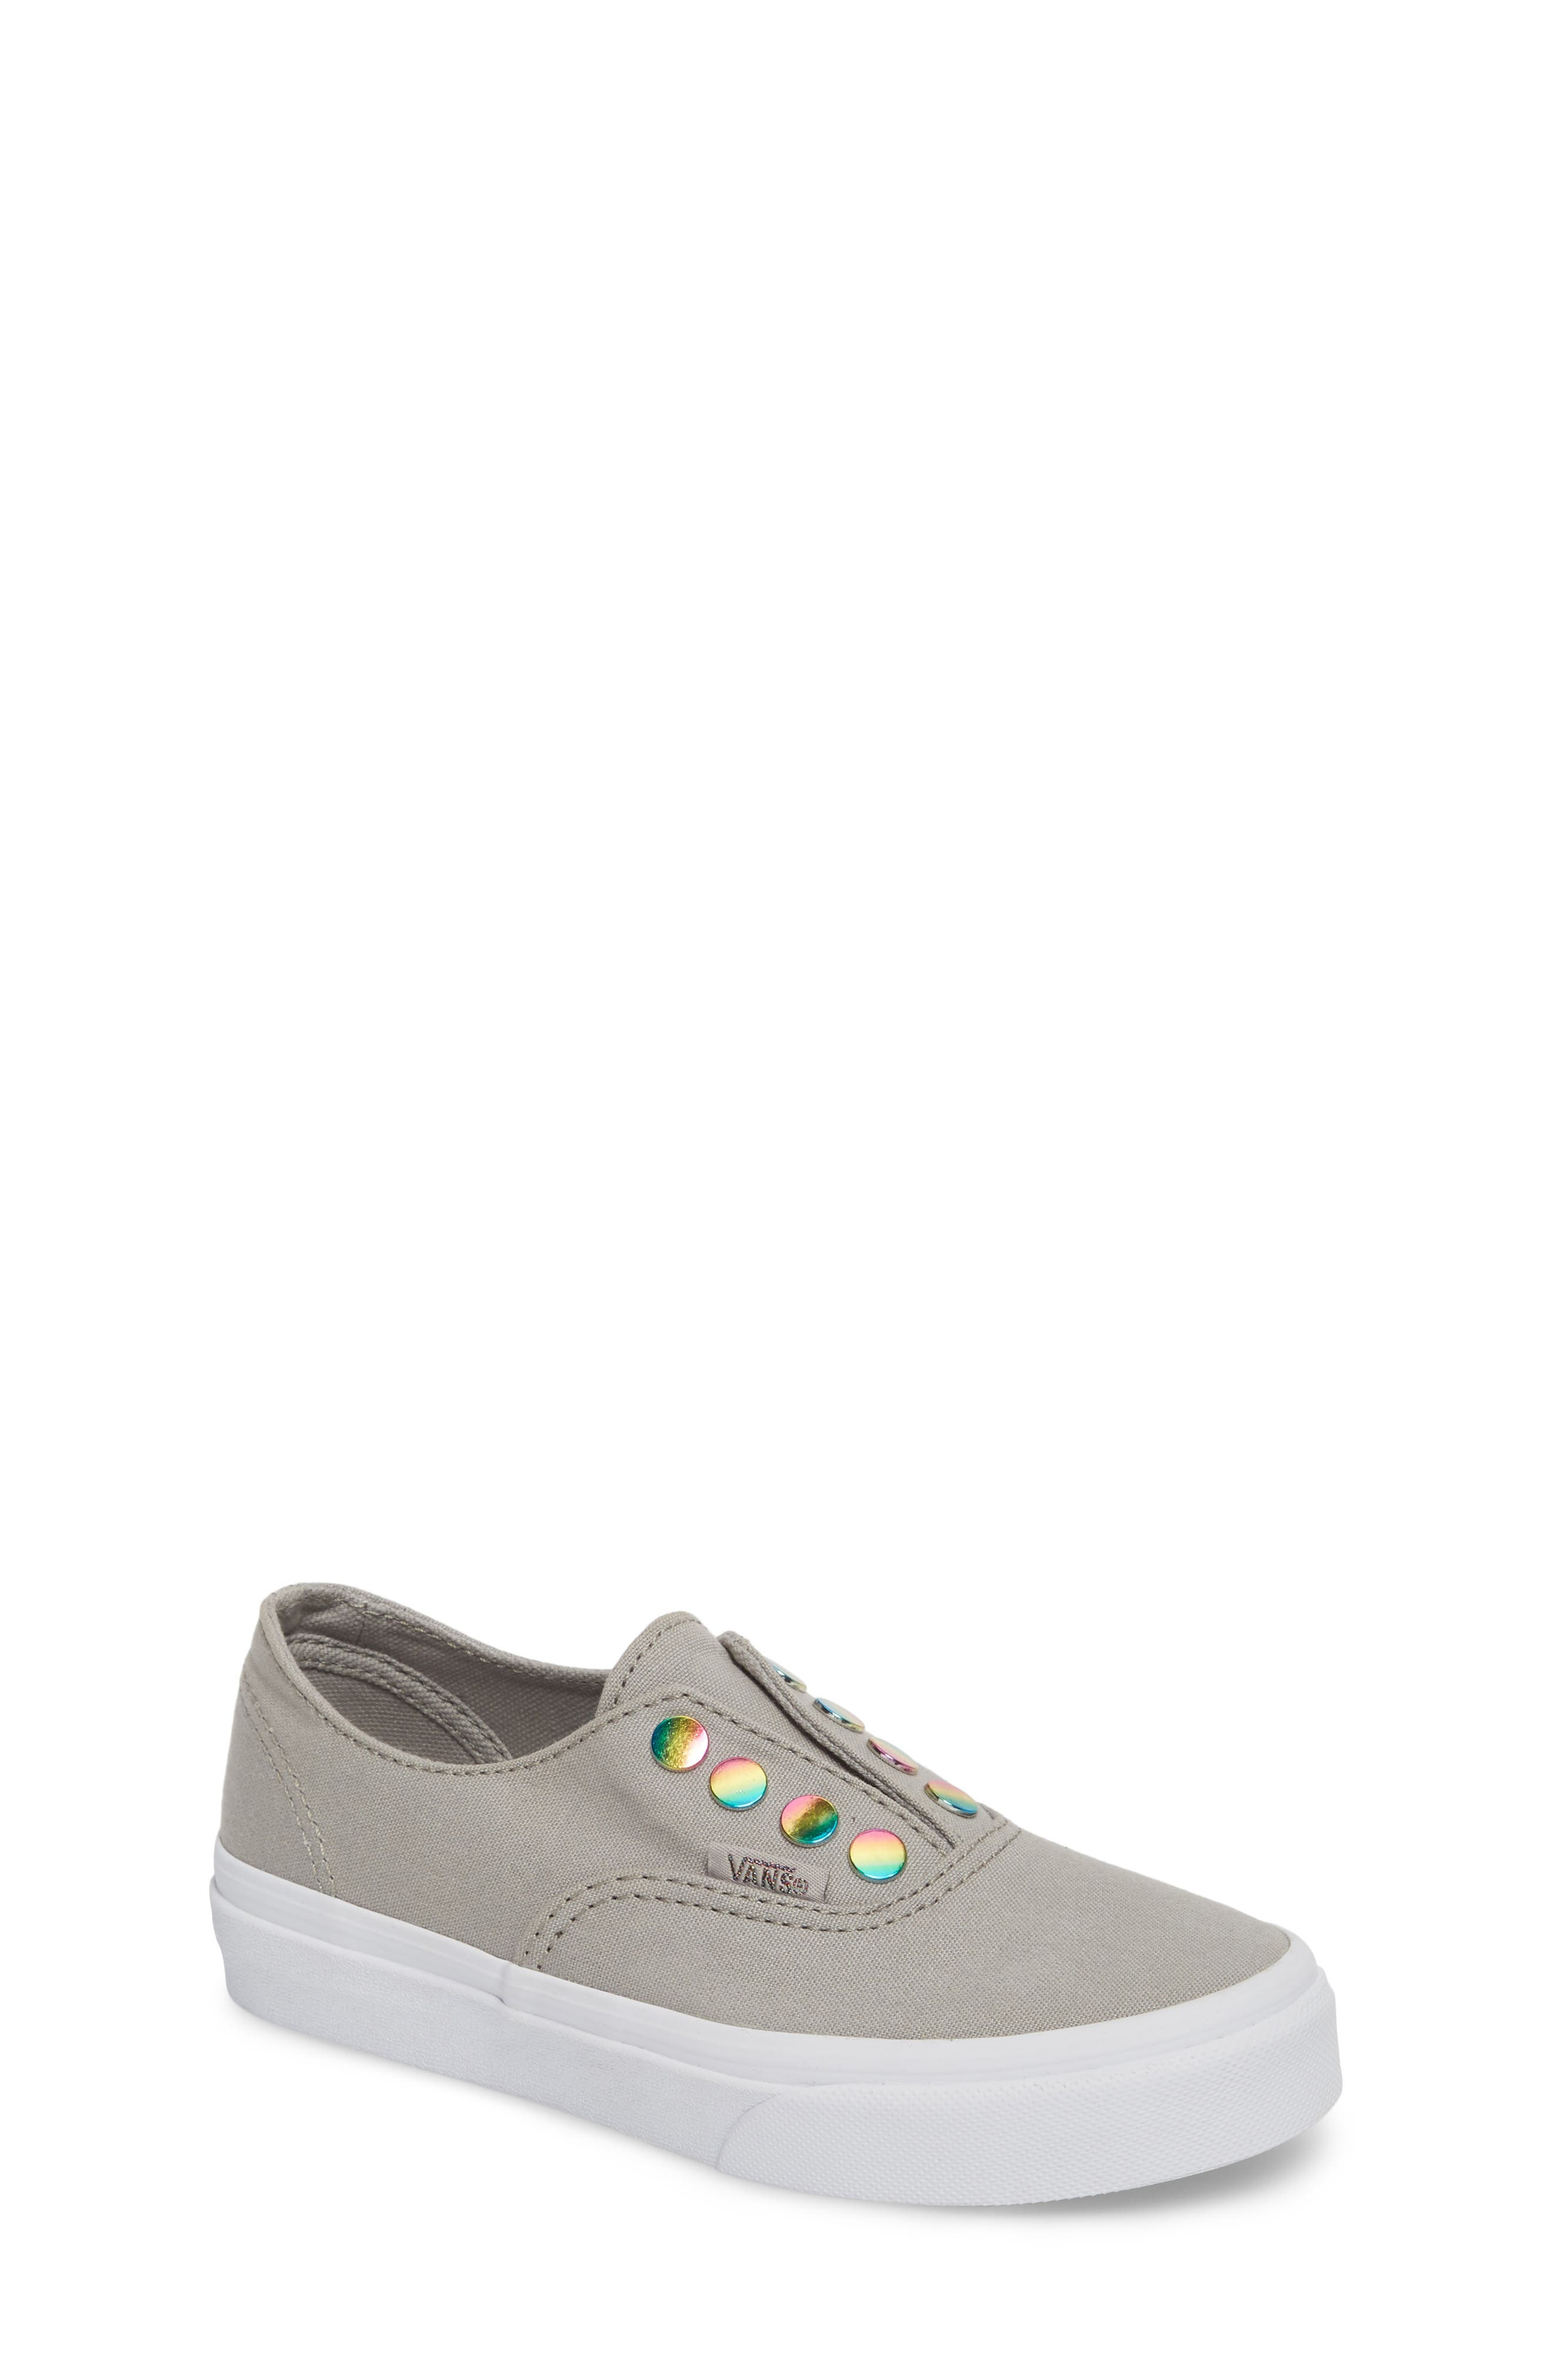 Authentic Gore Slip-On Sneaker,                         Main,                         color, Drizzle/ Rainbow Eyelet